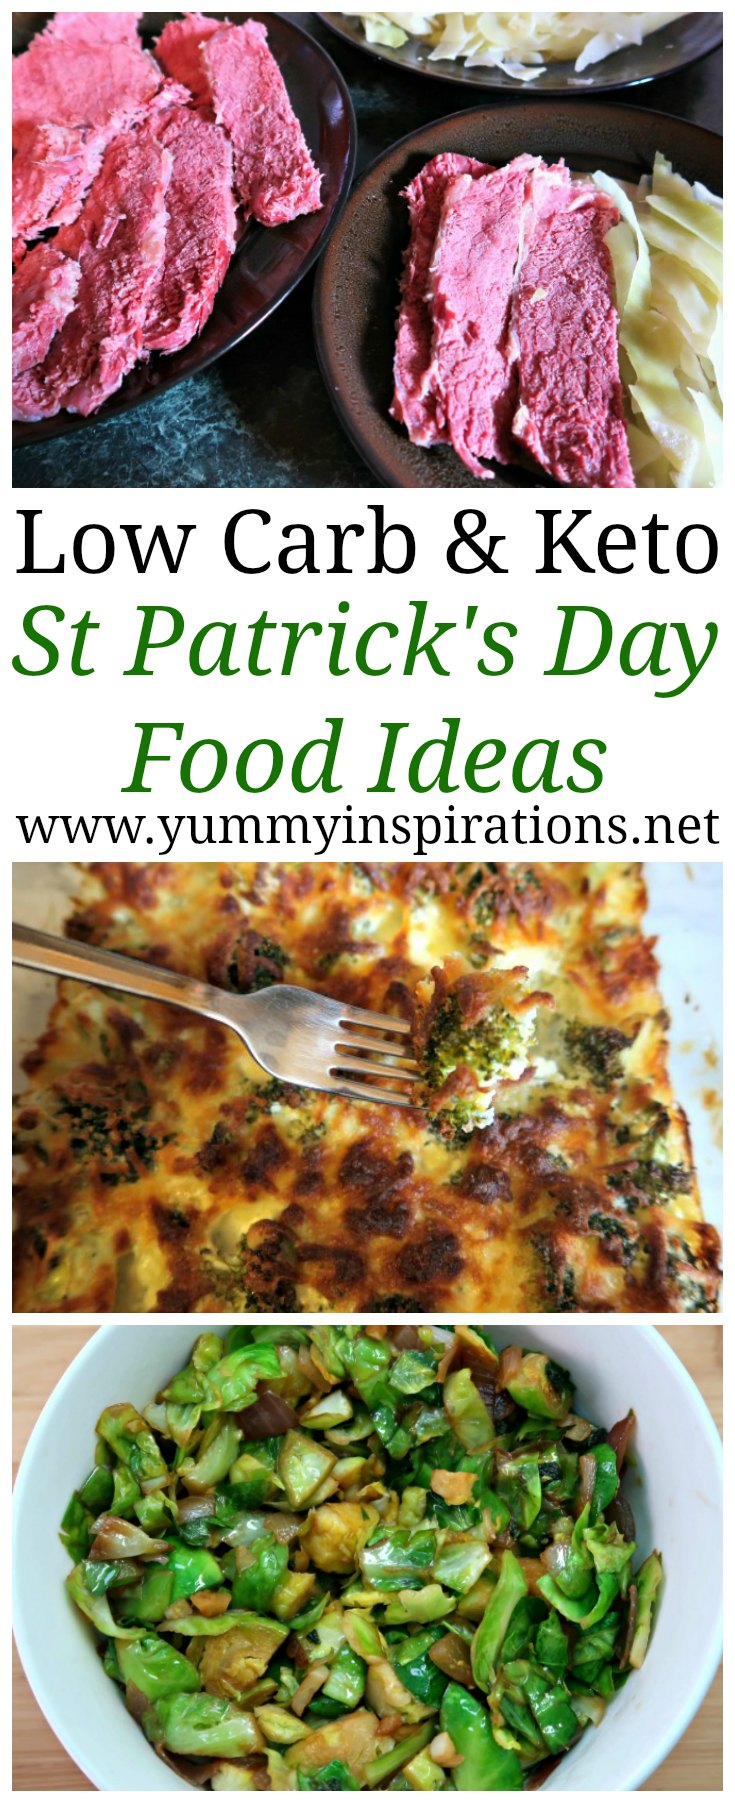 7 Traditional Low Carb St Patrick S Day Food Ideas Authentic Irish Dishes